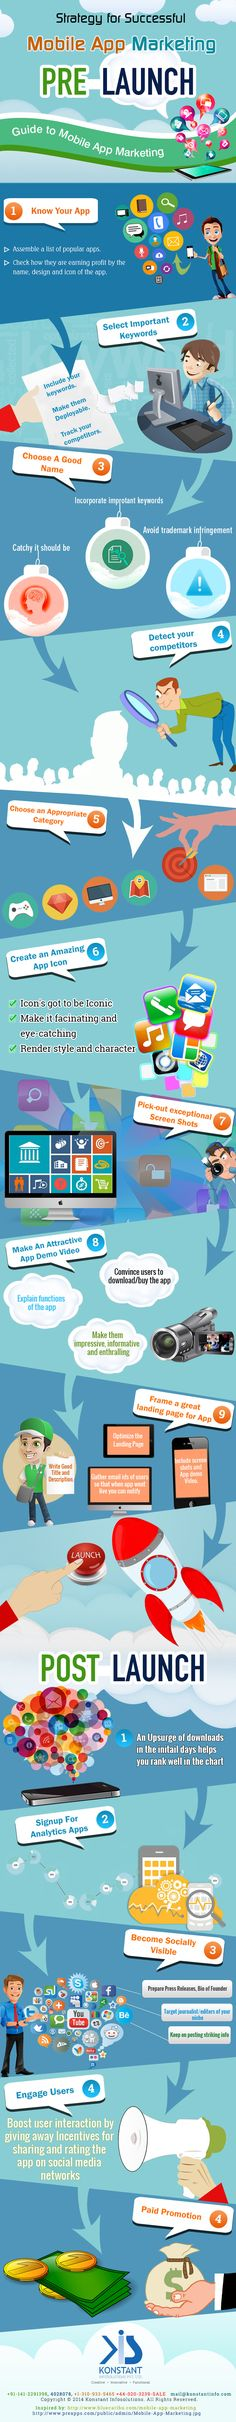 Strategy for Successful Mobile App Marketing   #App #Marketing #MobileApplication #infographic